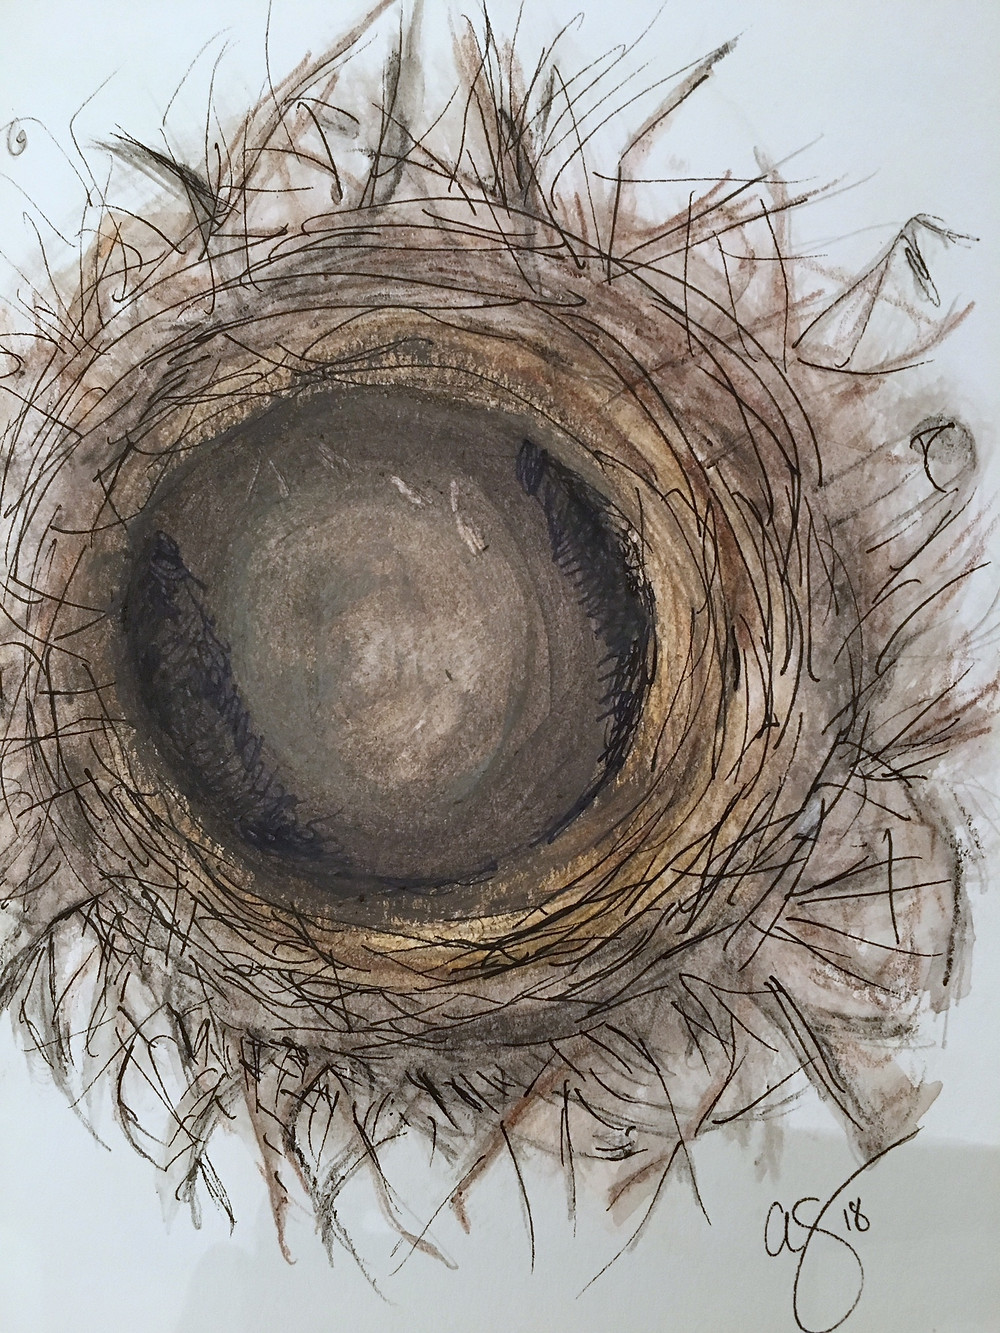 empty nest photograph by therapist from Sanctuary Christian Counseling in Shippensburg PA